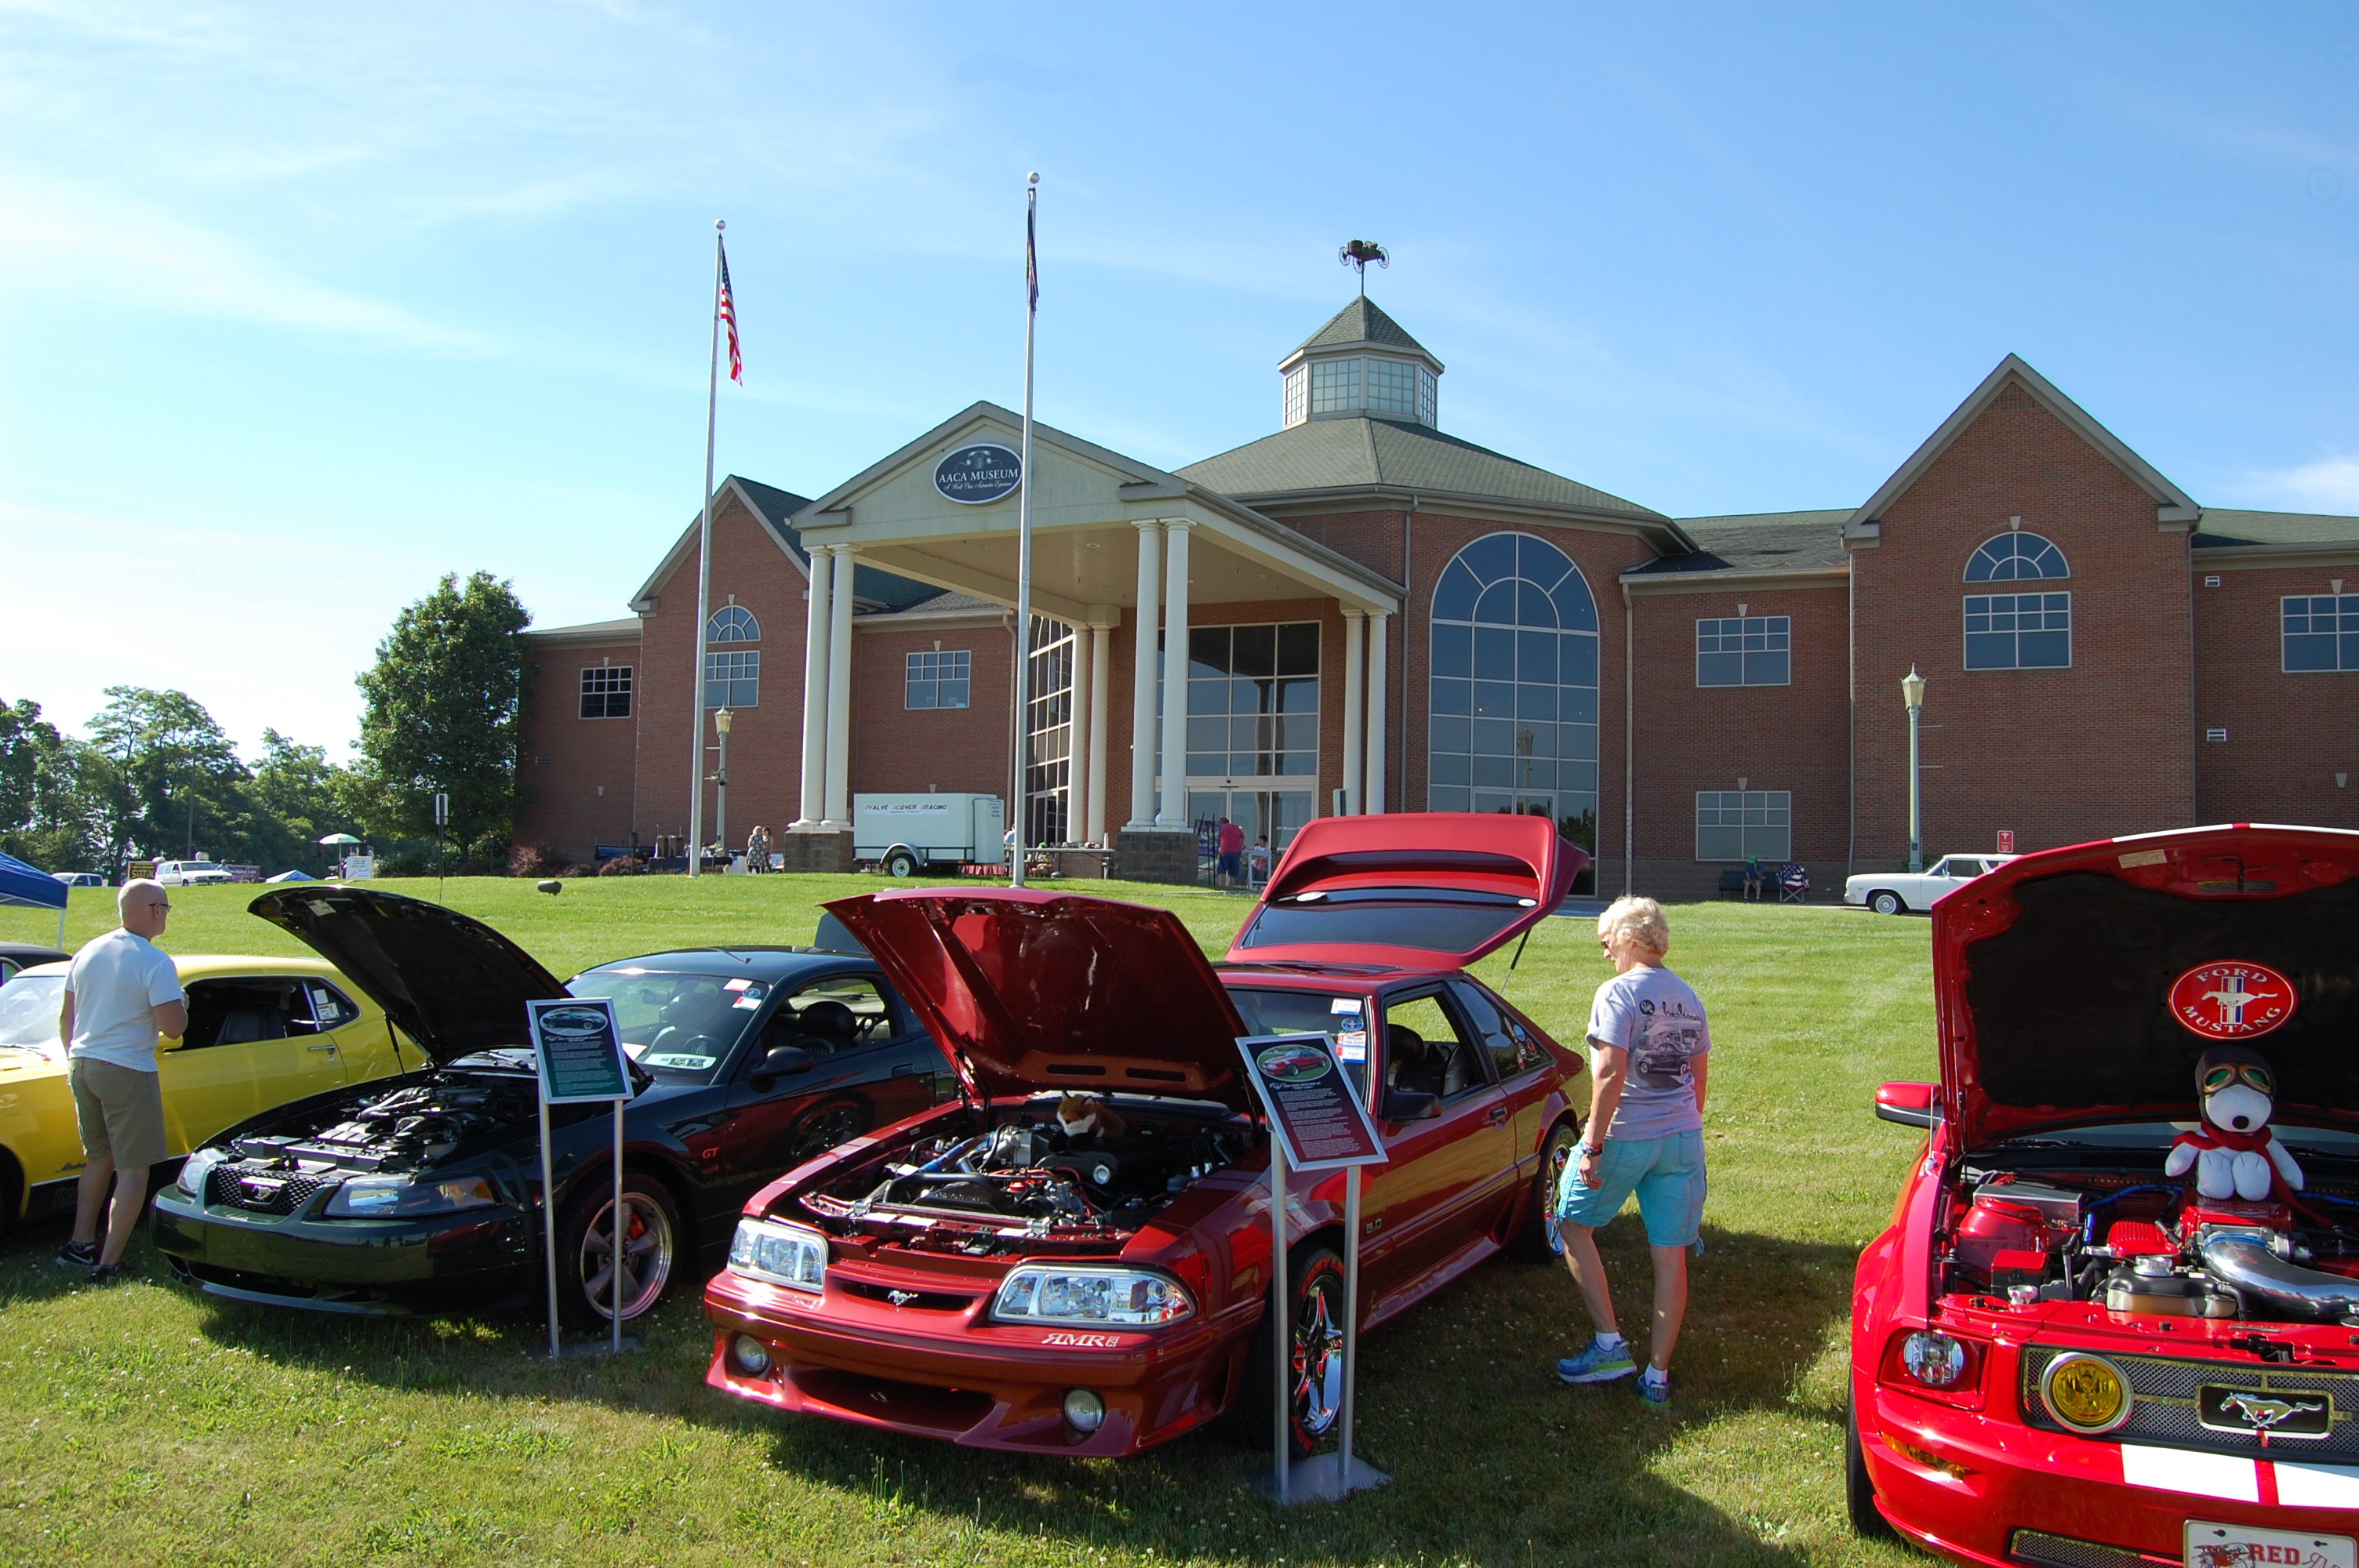 Mustang Club Of Central PA - Aaca museum car show